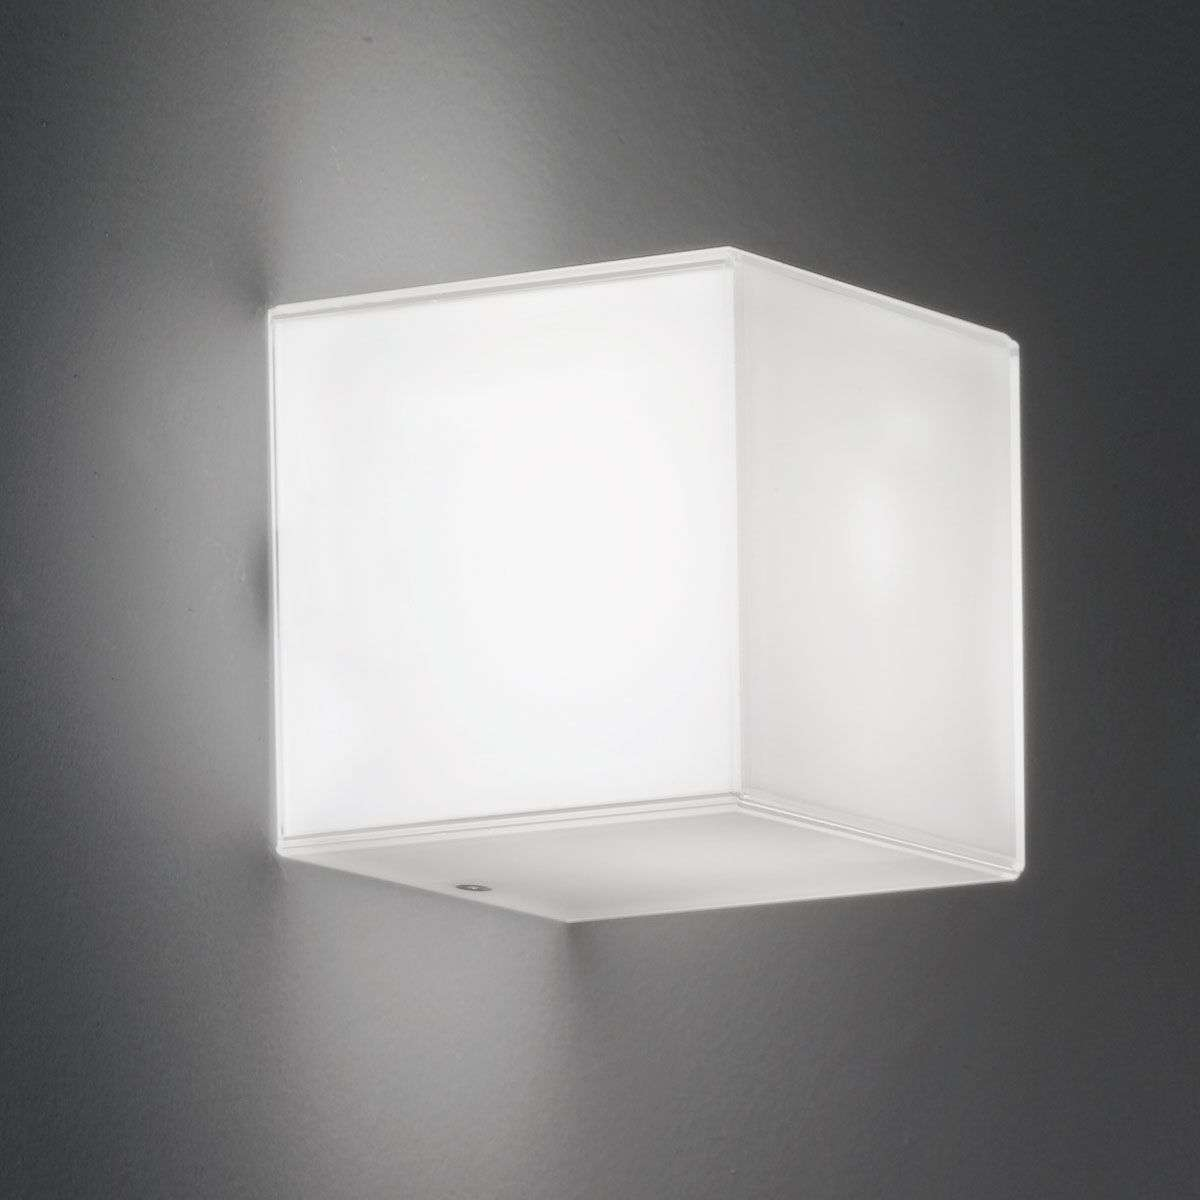 Cube shaped glass wall light compact with leds lights cube shaped glass wall light compact with leds 9010115 31 aloadofball Gallery